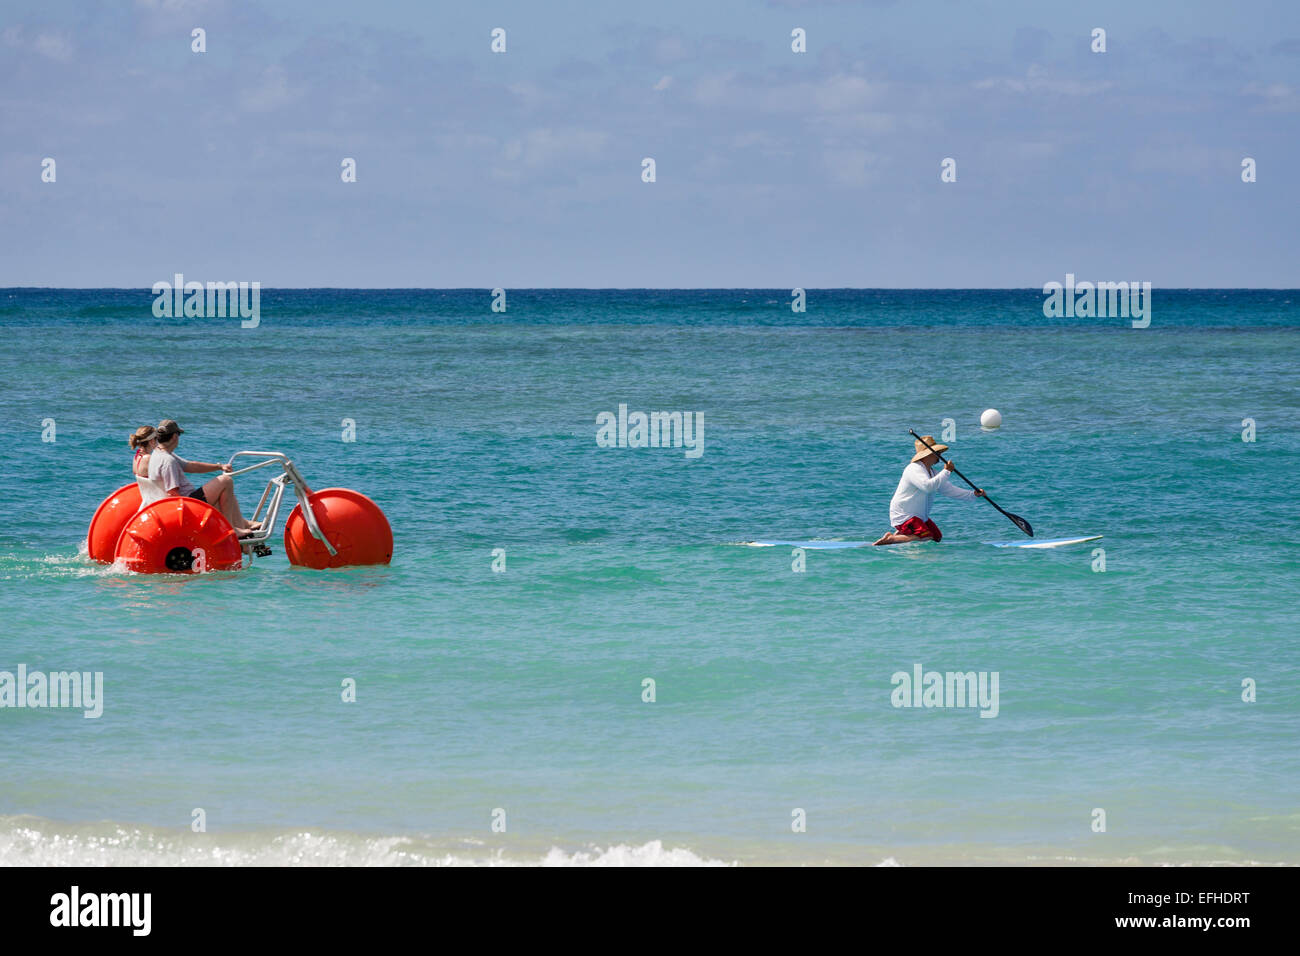 Old and New: water tricycle chases a kneeling surf board paddler. A couple peddle an orange water tricycle in hot - Stock Image